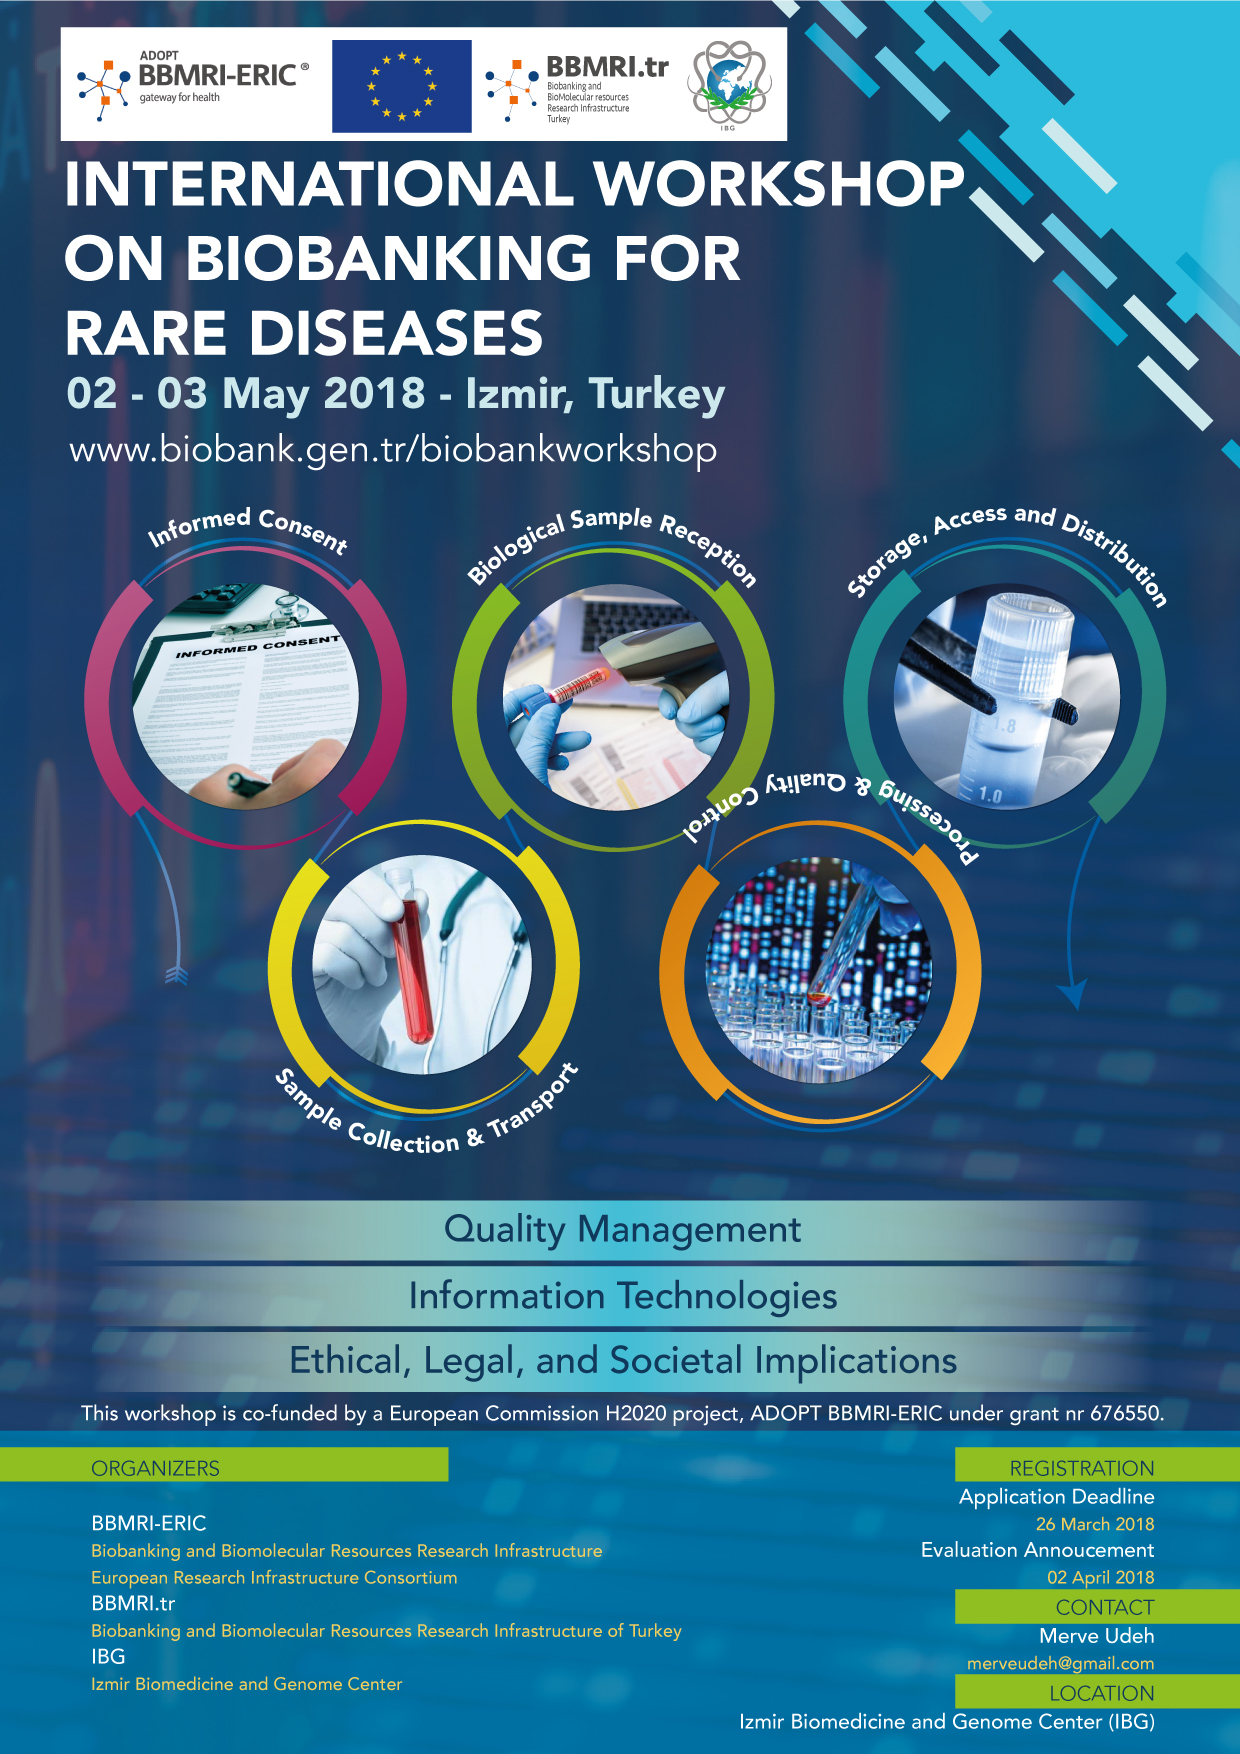 International Workshop on Biobanking for Rare Diseases